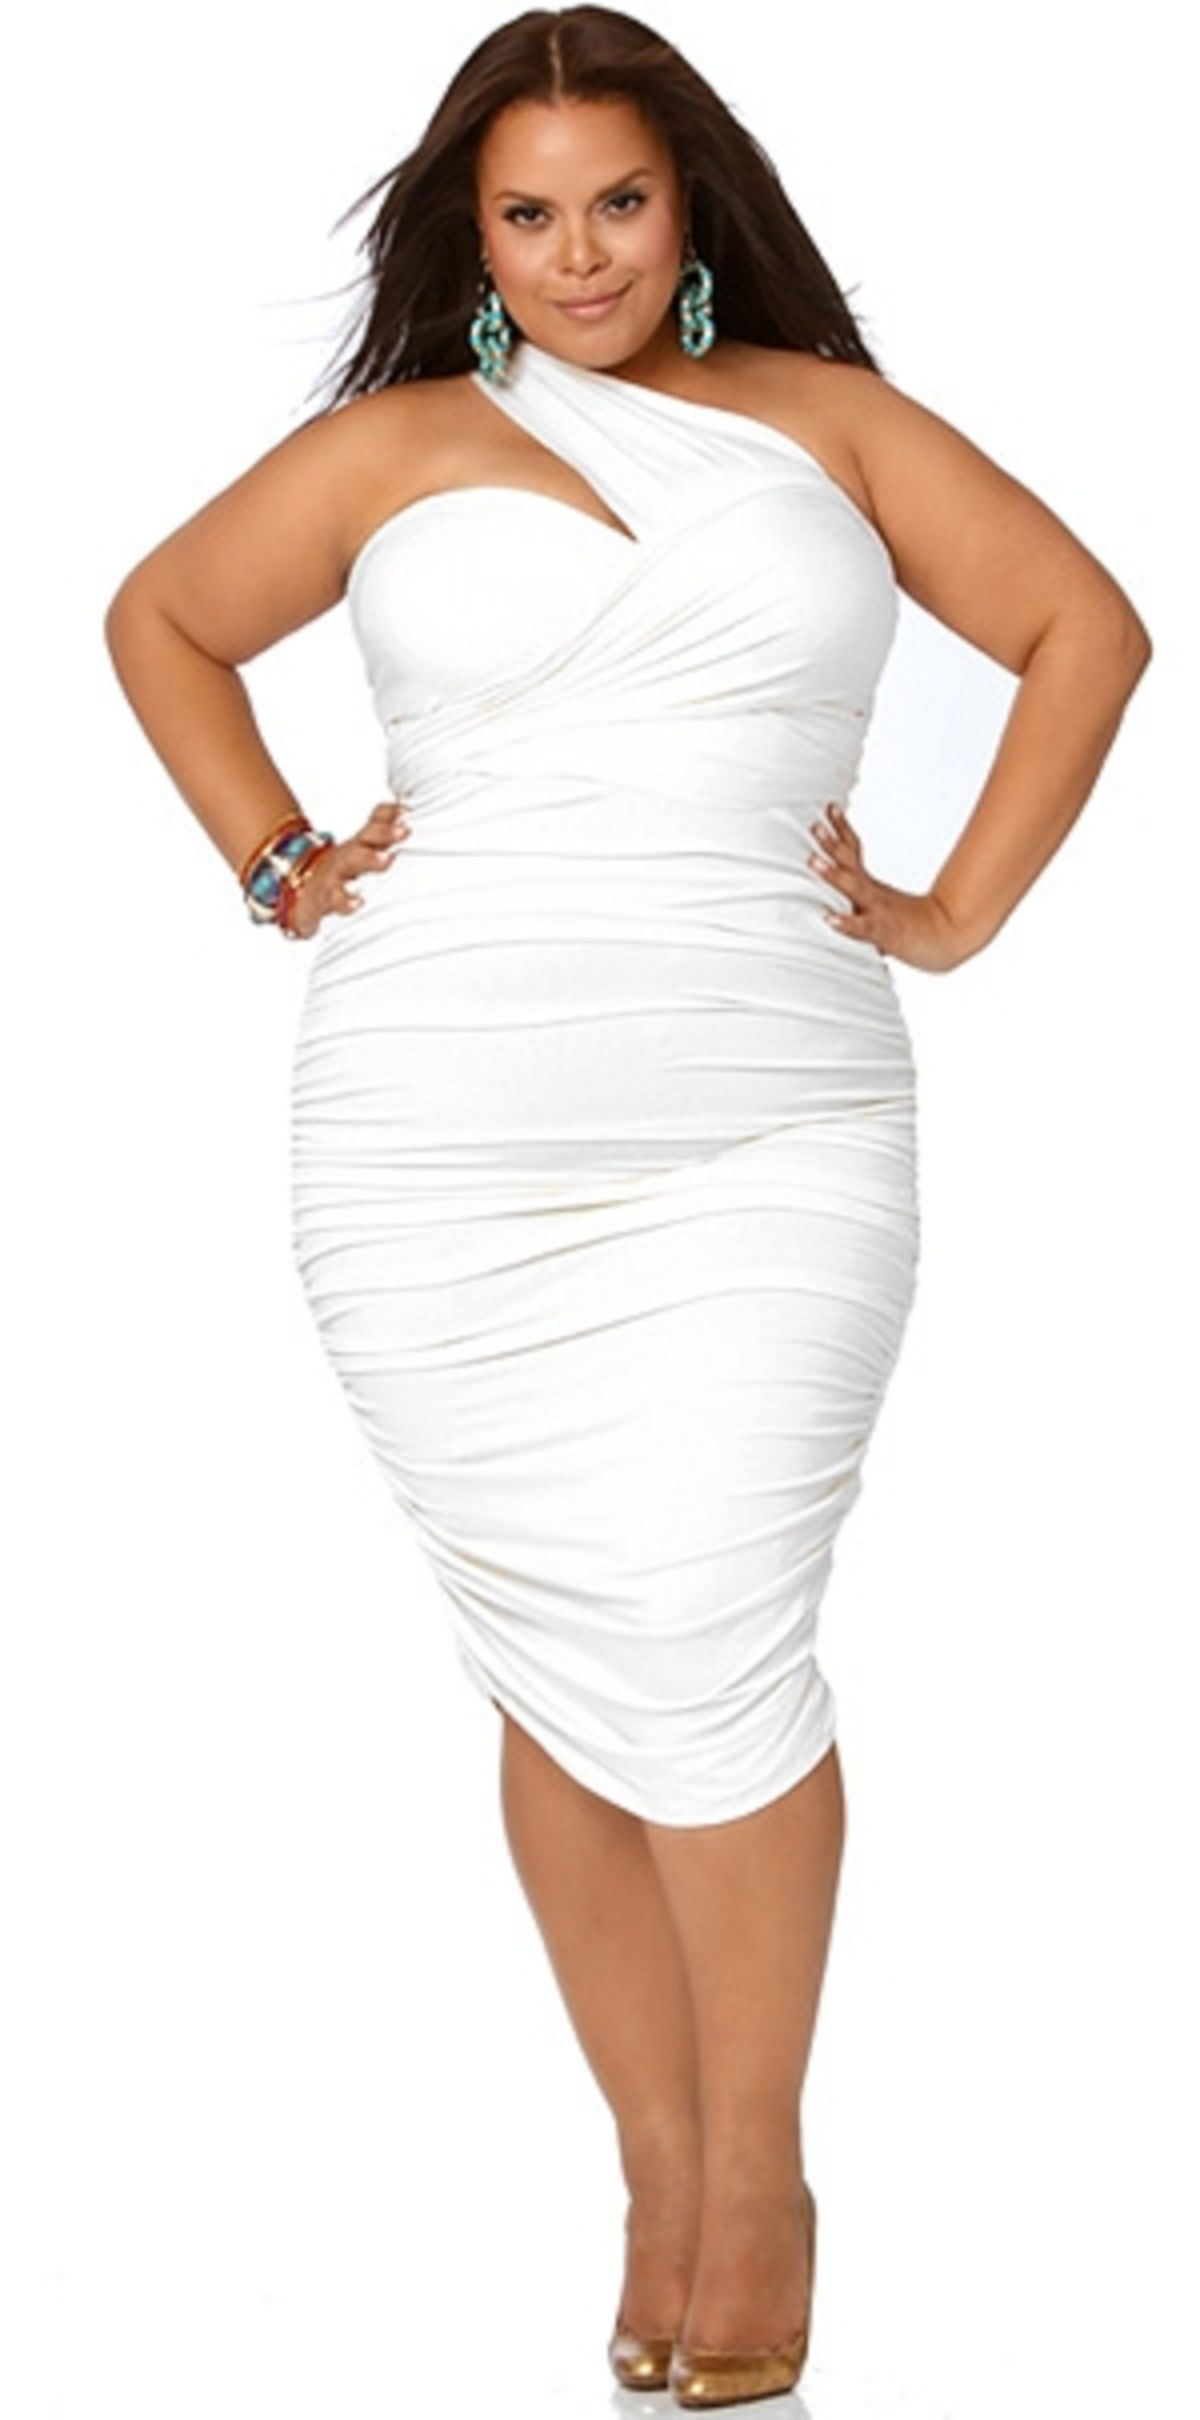 Summer 2012 Plus Size Trends: White Hot | Size clothing, For women ...